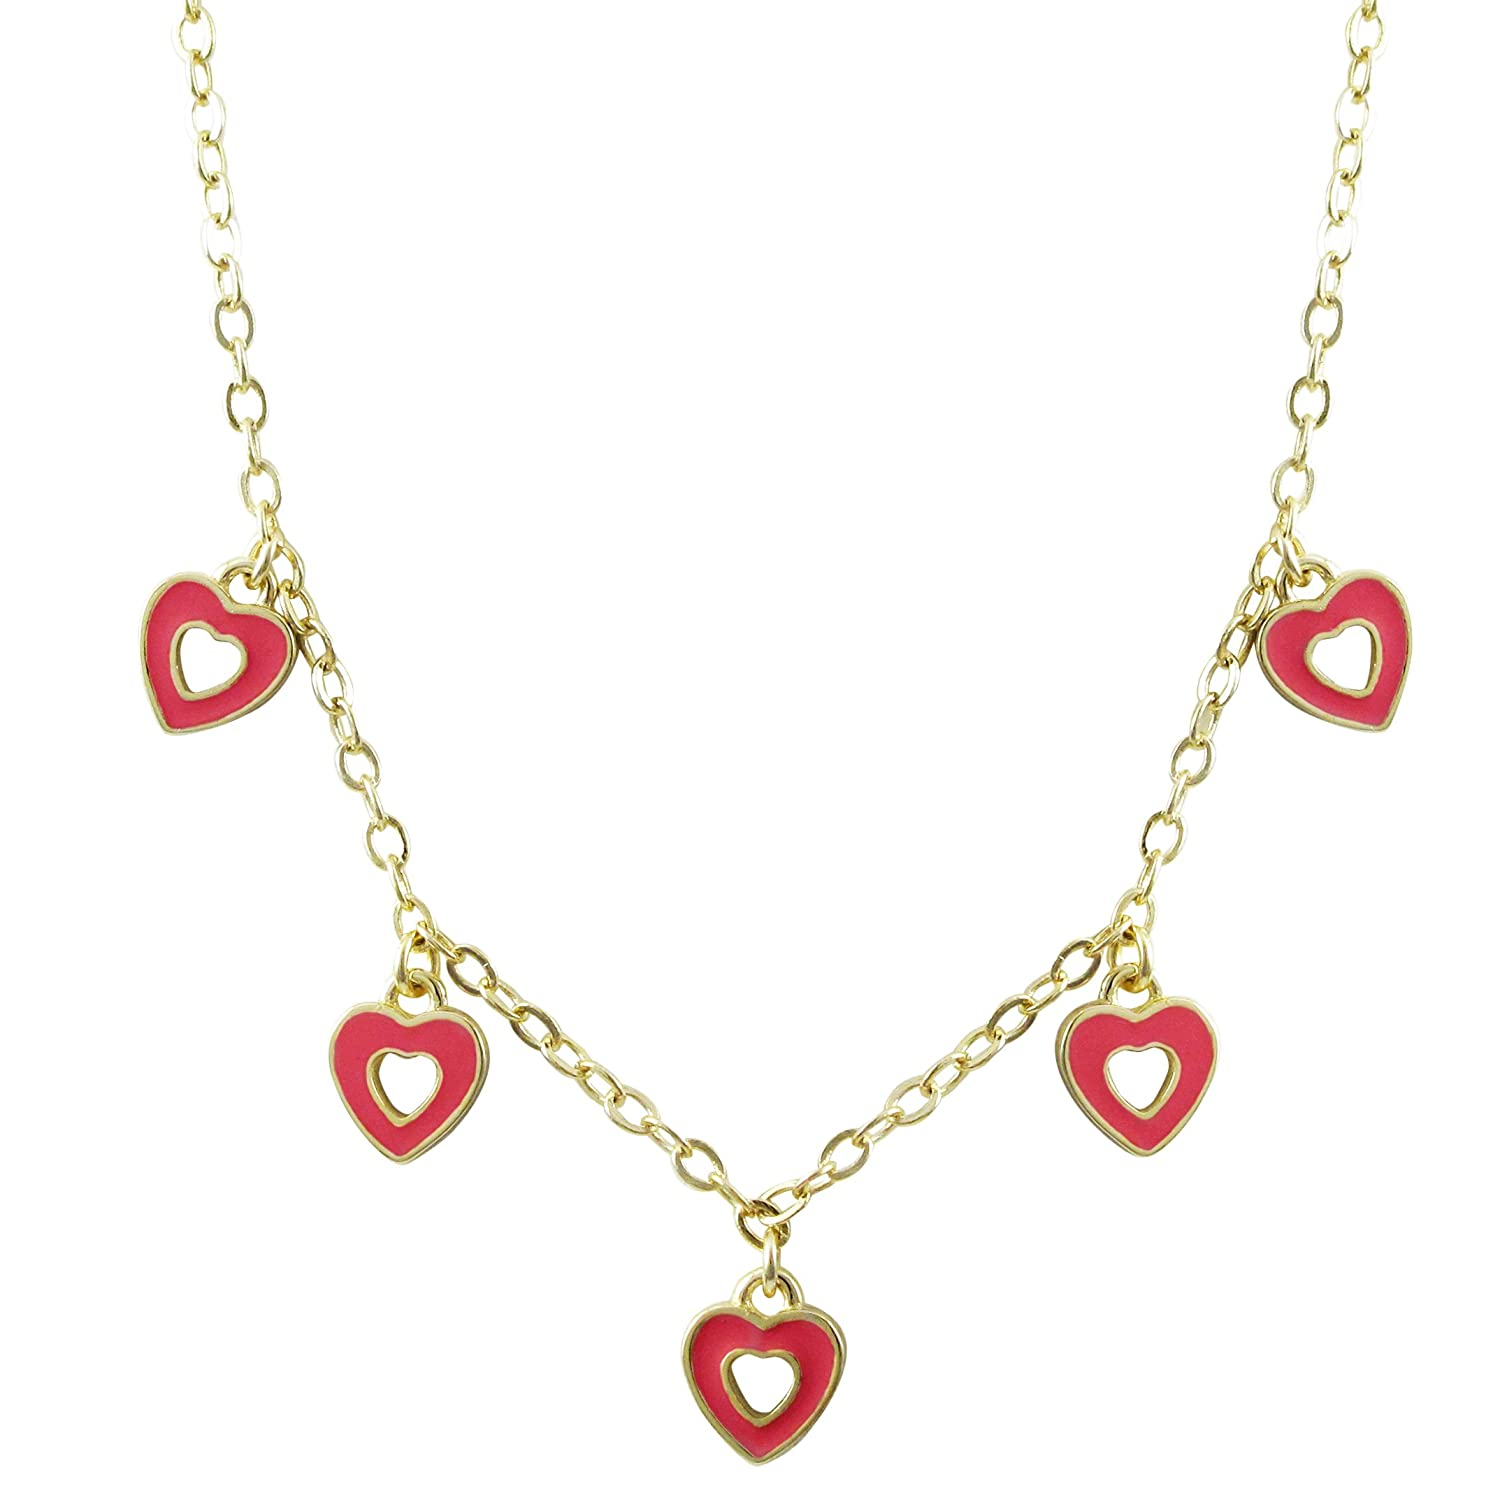 15+2 Extender Ivy and Max Gold Finish Hot Pink Enamel Childrens Teens Dangling Hearts Necklace